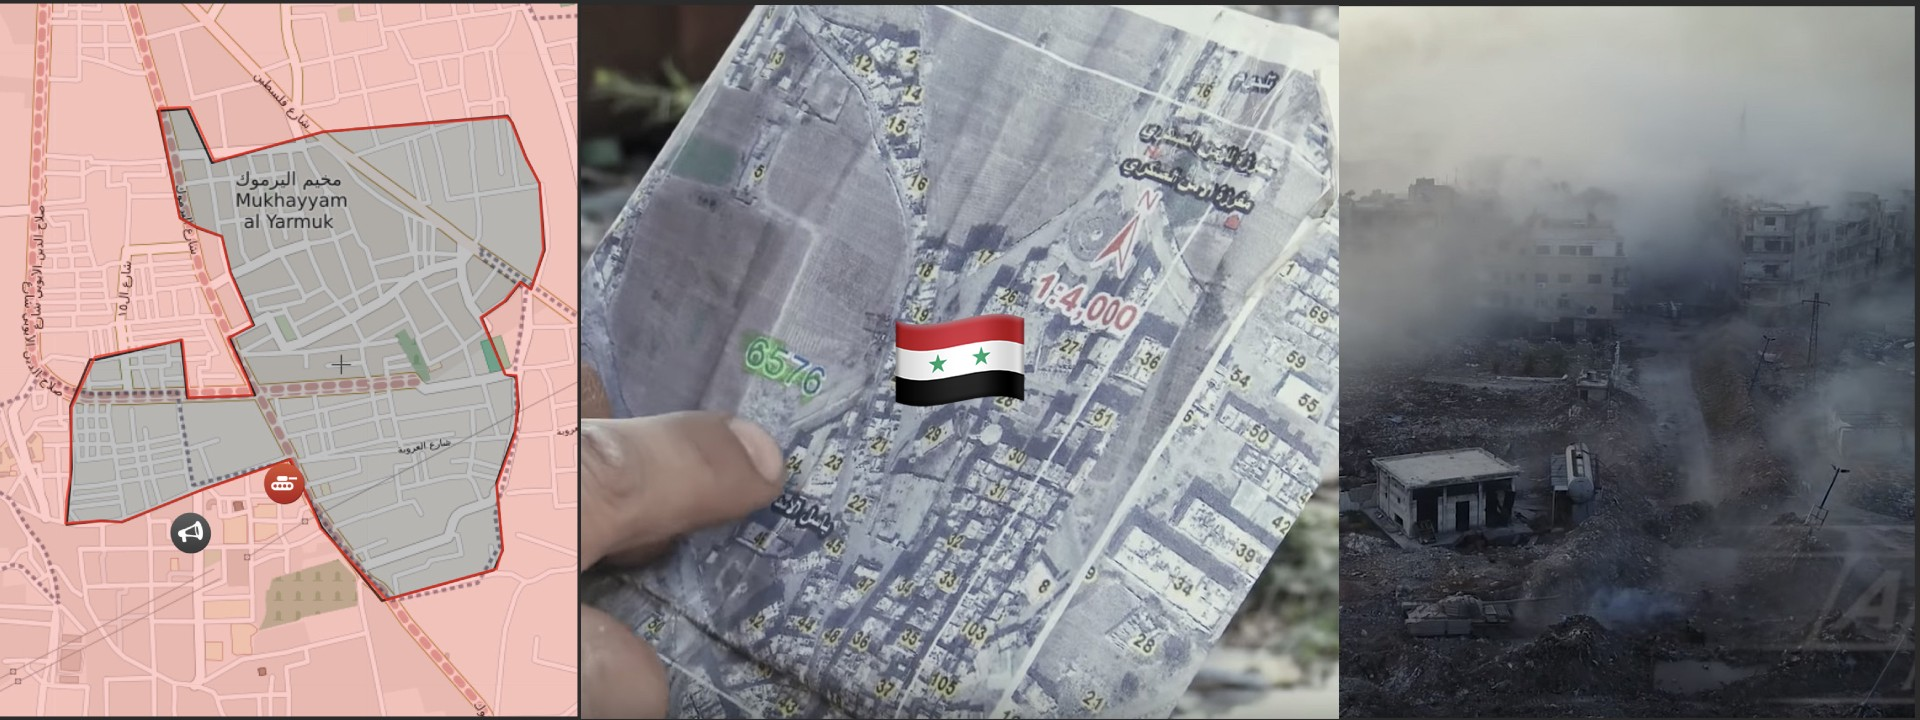 BreakingSyria: The Battle for the Last ISIS Bastion in Damascus